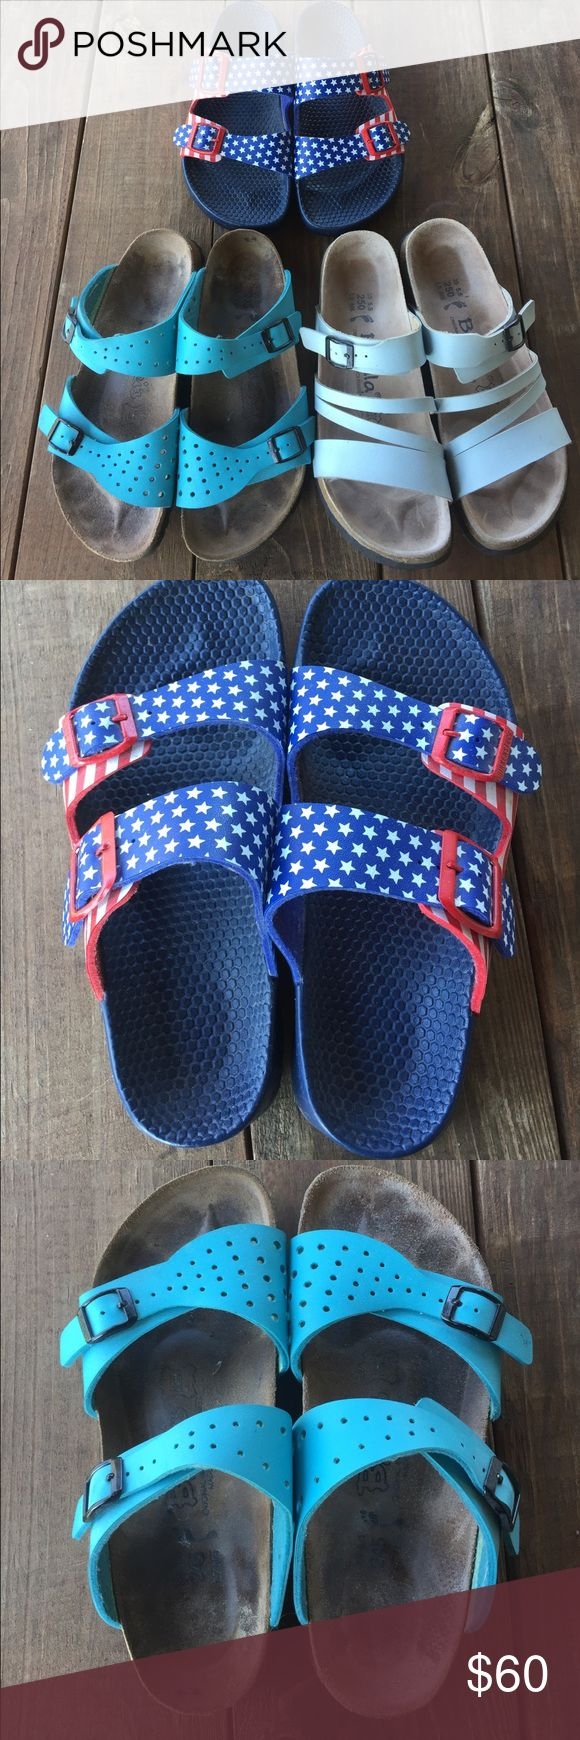 3x Birkenstock Sandals Egg shell blue are Betula by Birkenstock and size 8 (39)...but fit like a 7 and American Flag are 7 (38) and turquoise blue are size 7 (38). Please note that they have all been gently worn. Egg shell blue ones have some small faint stains which I tried to picture. Birkenstock Shoes Sandals